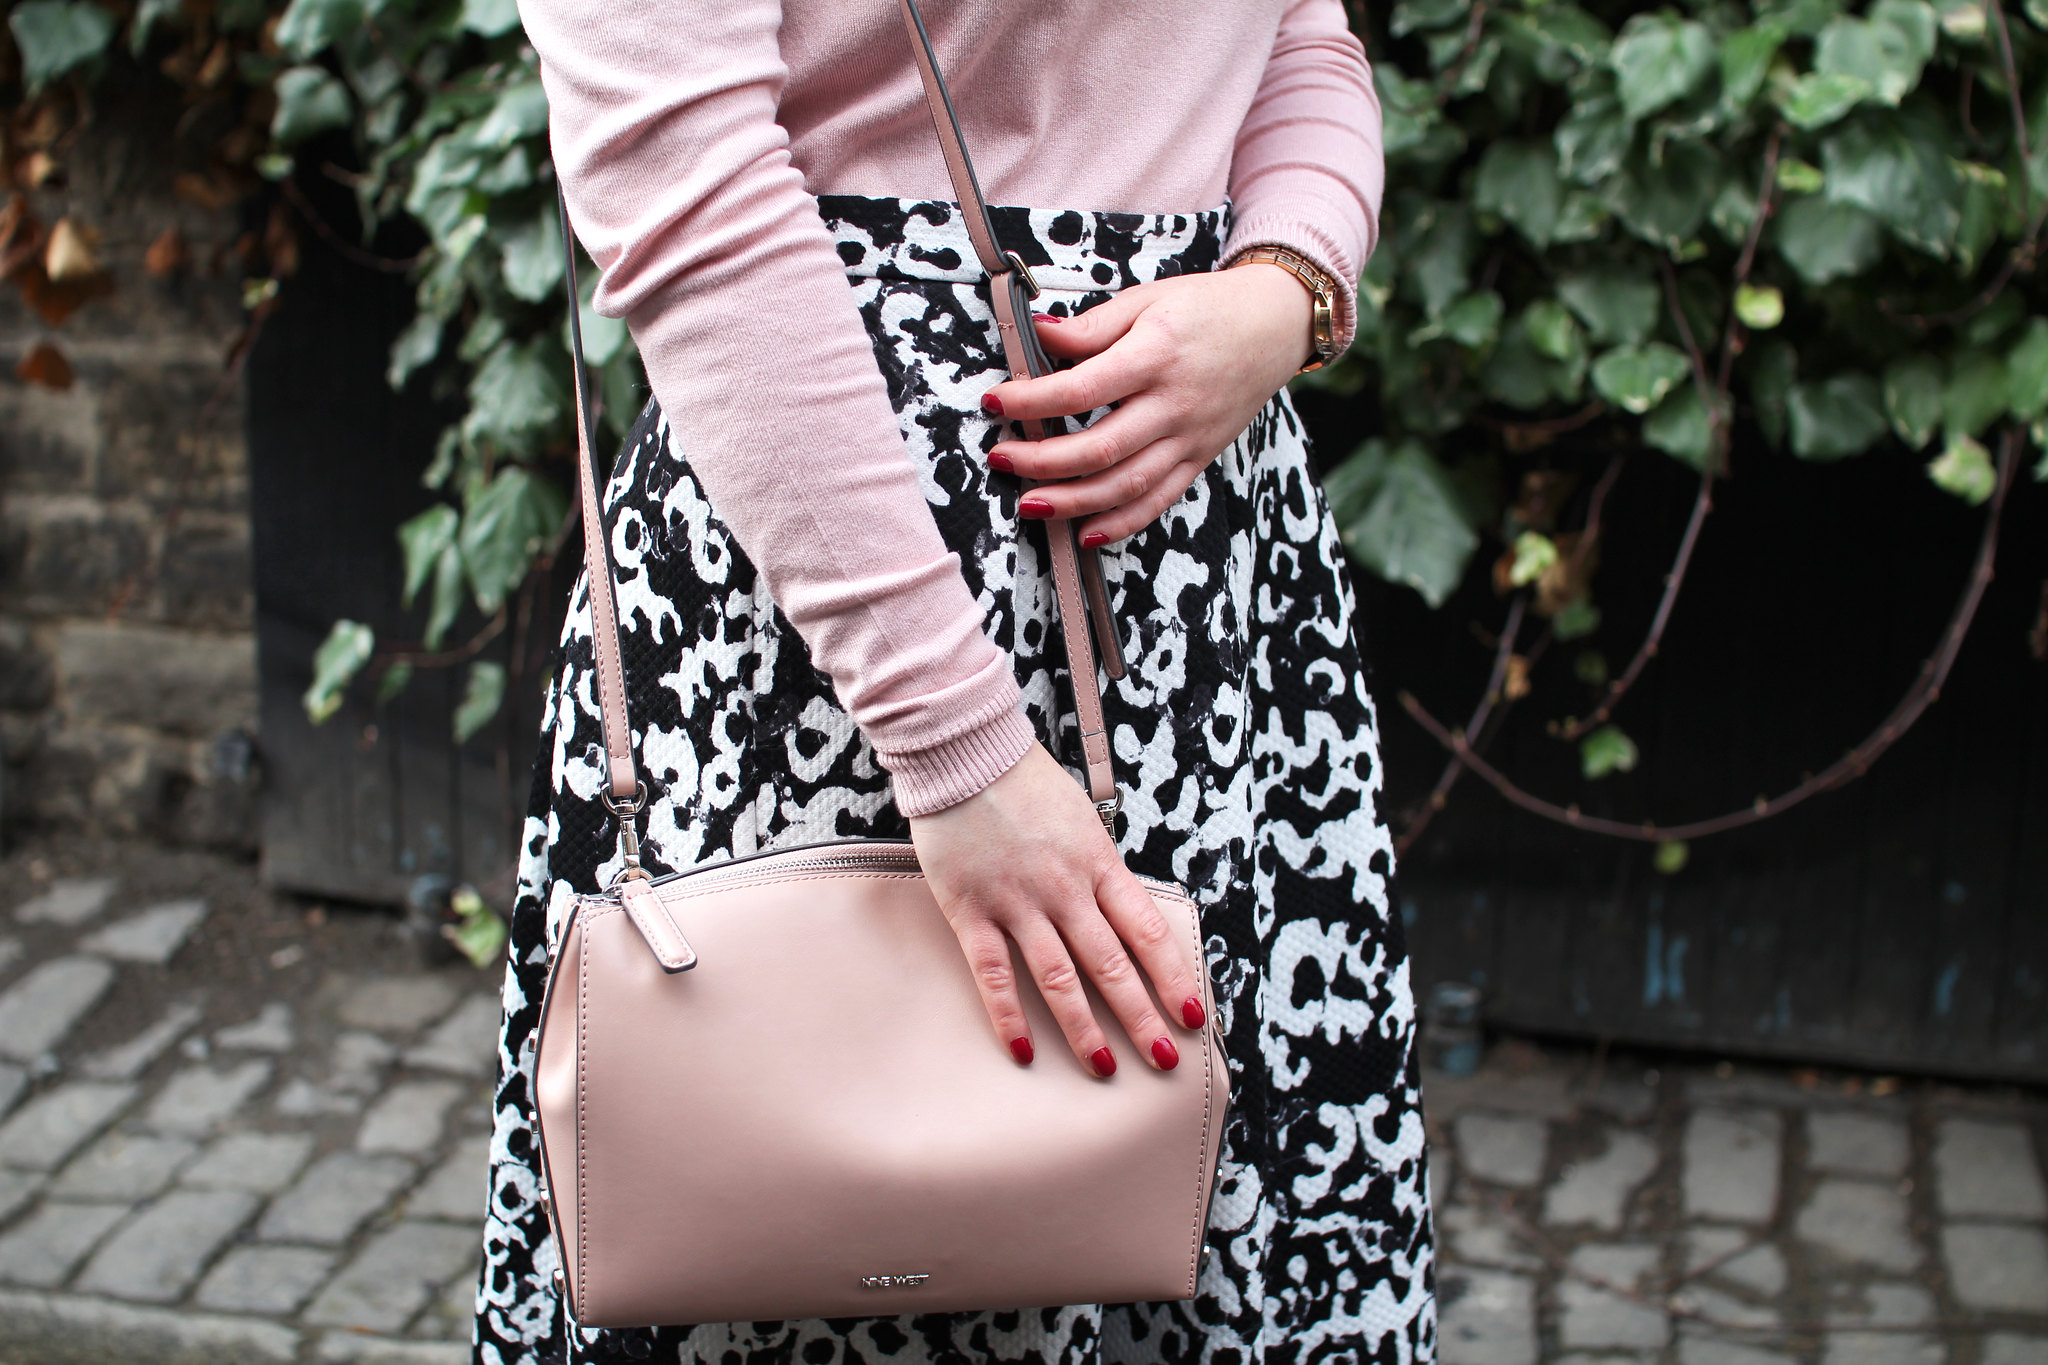 ruffle jumper top new look pink uk fashion lifestyle blogger The Little Things